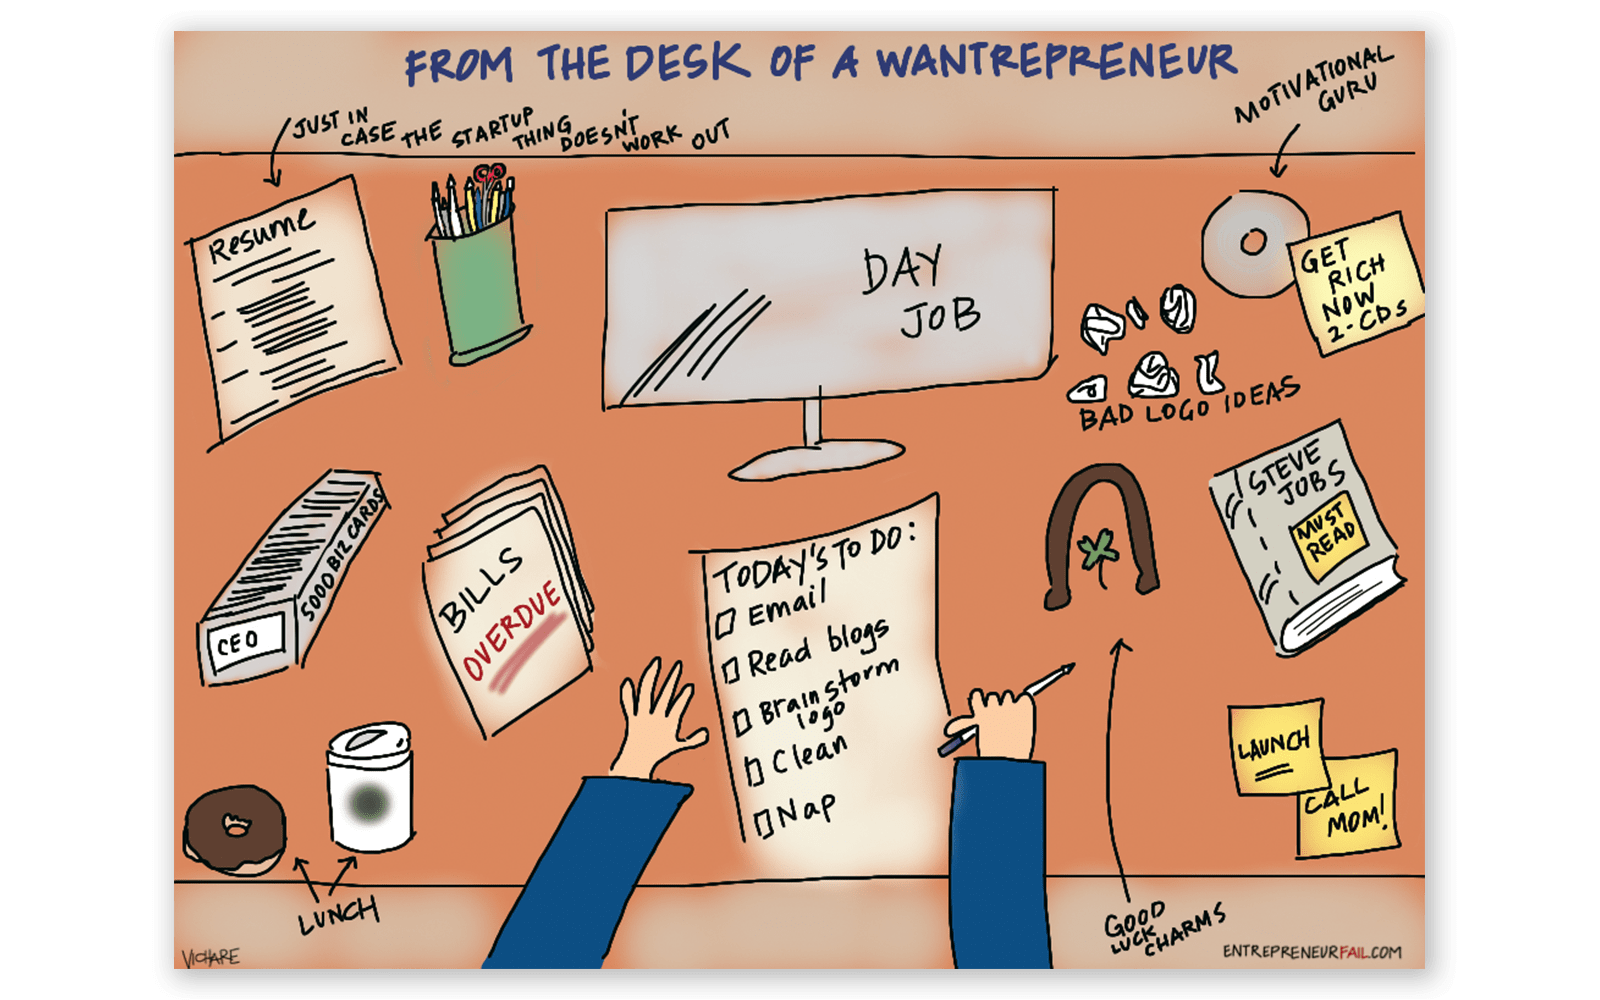 desk of a wantrepreneur